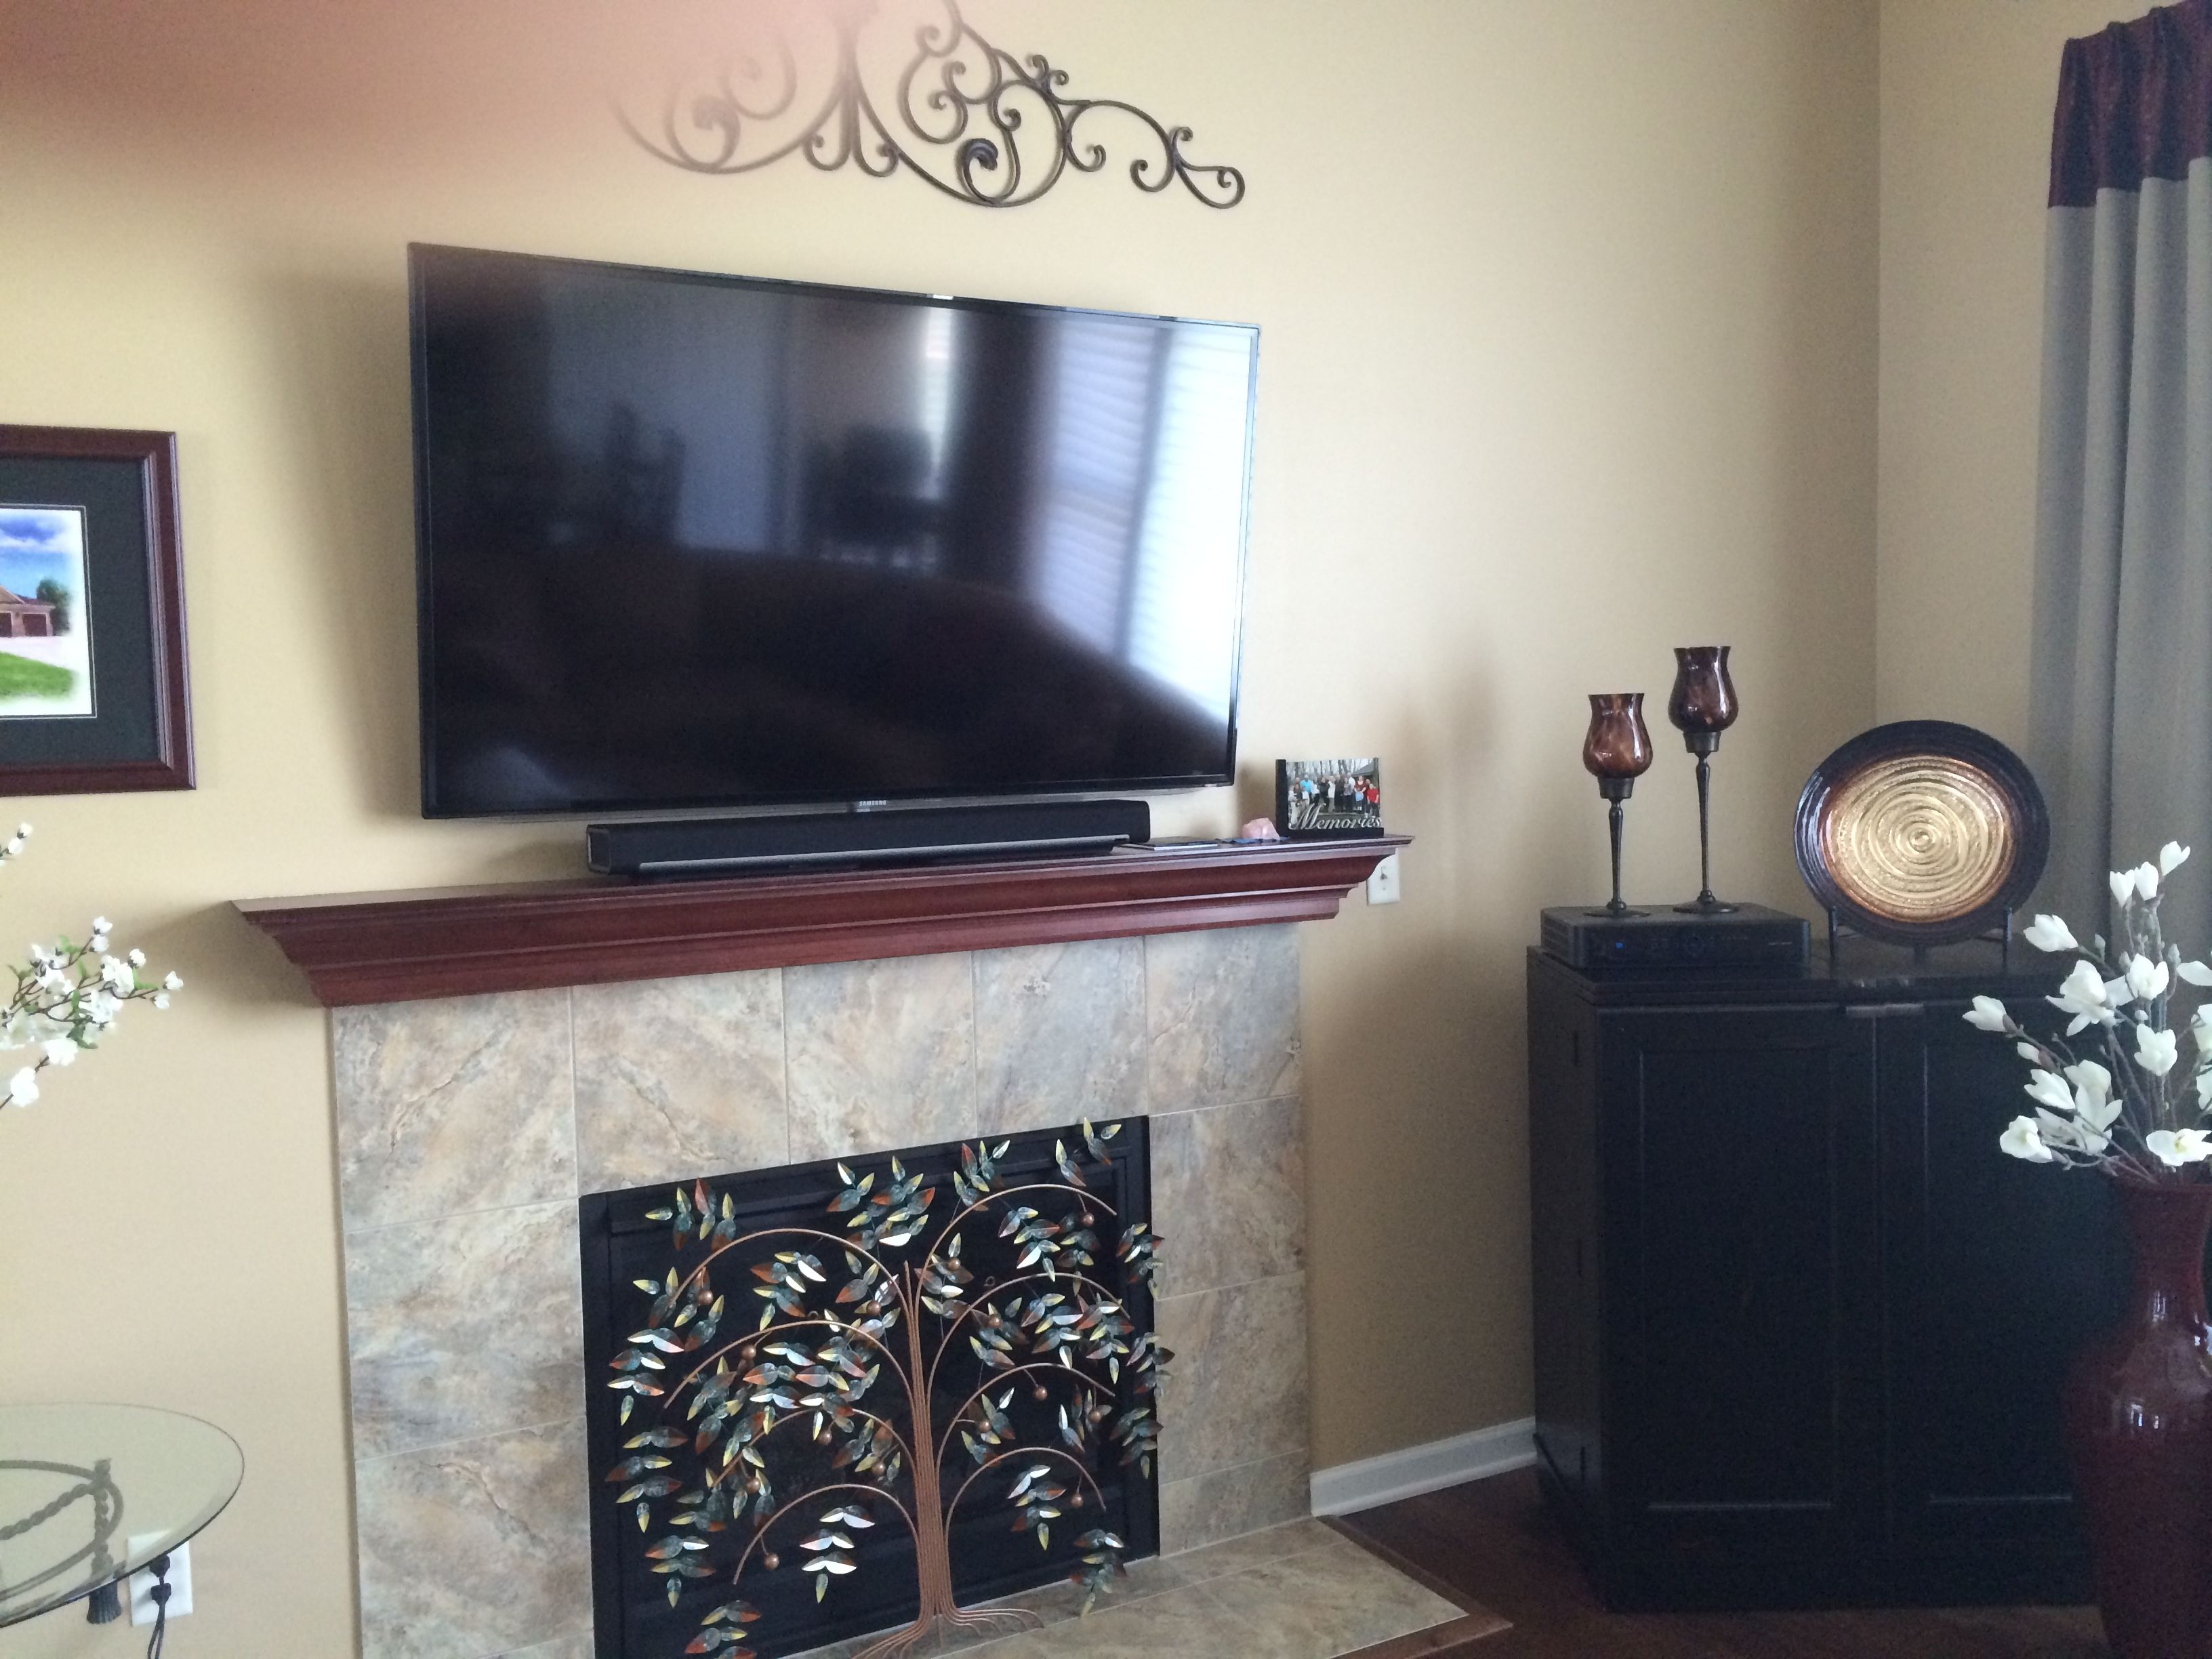 Flat Panel Tv Mounted Over A Fireplace With Sonos Soundbar Model